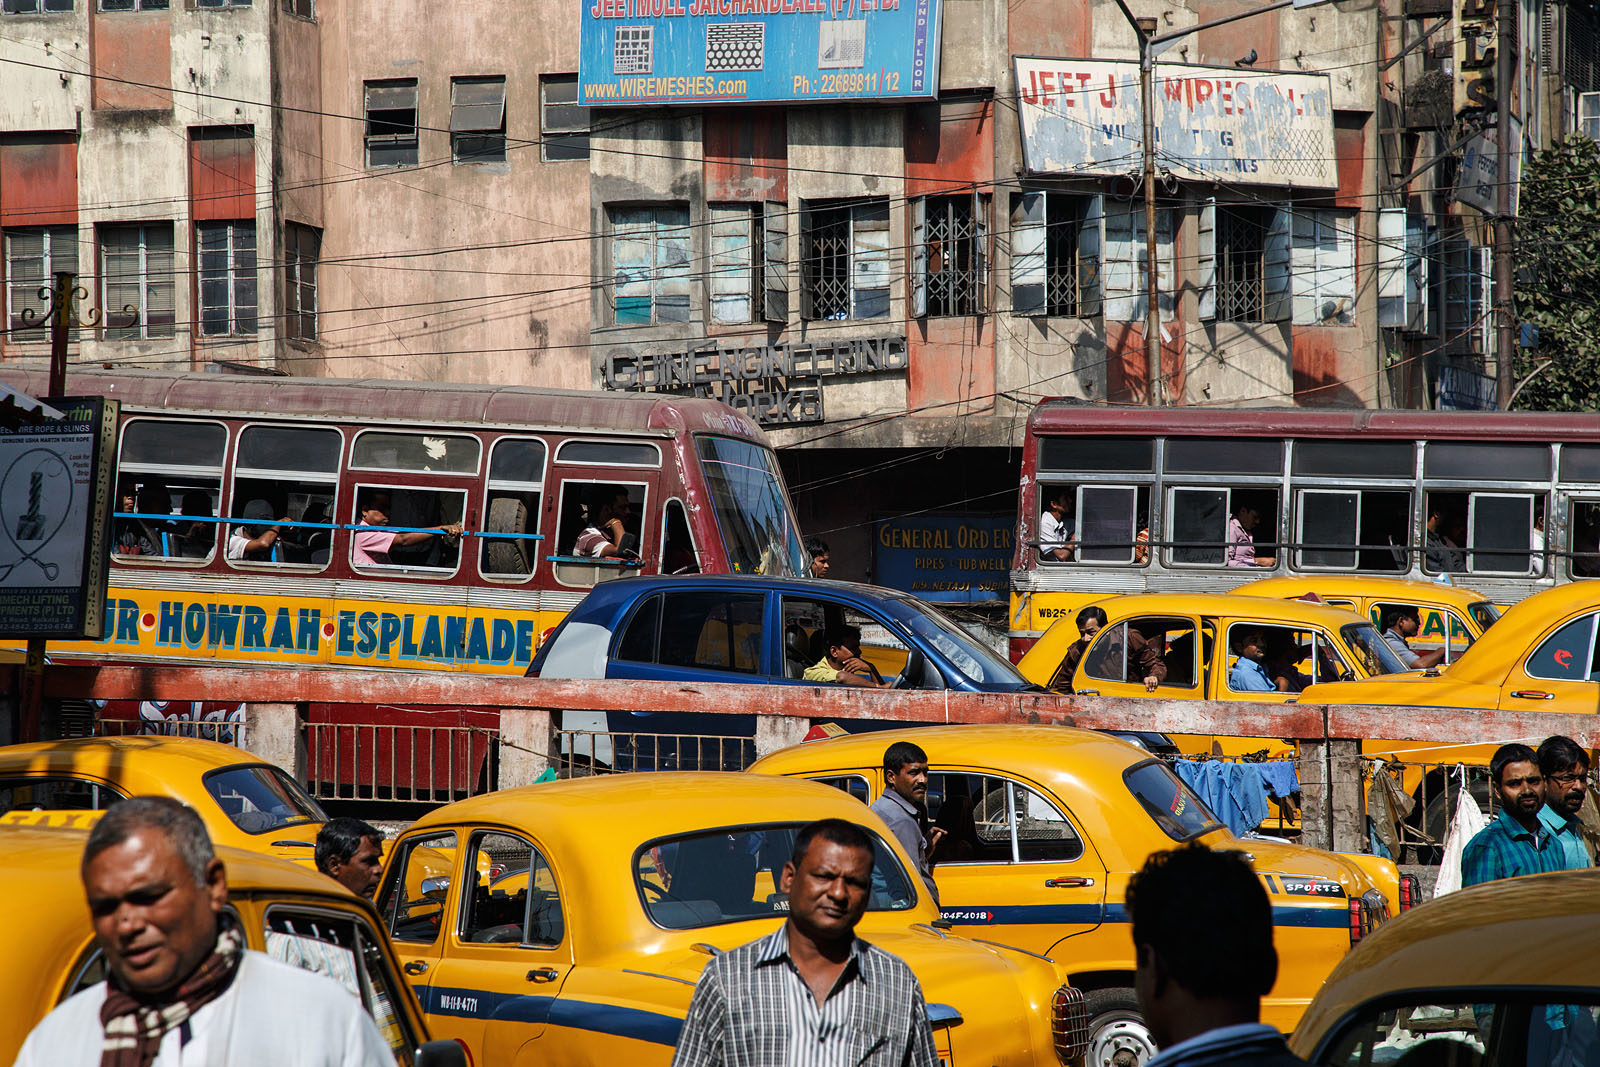 india_kolkata_calcutta_street_taxi_traffic_cars_congestion-1600x1067.jpg